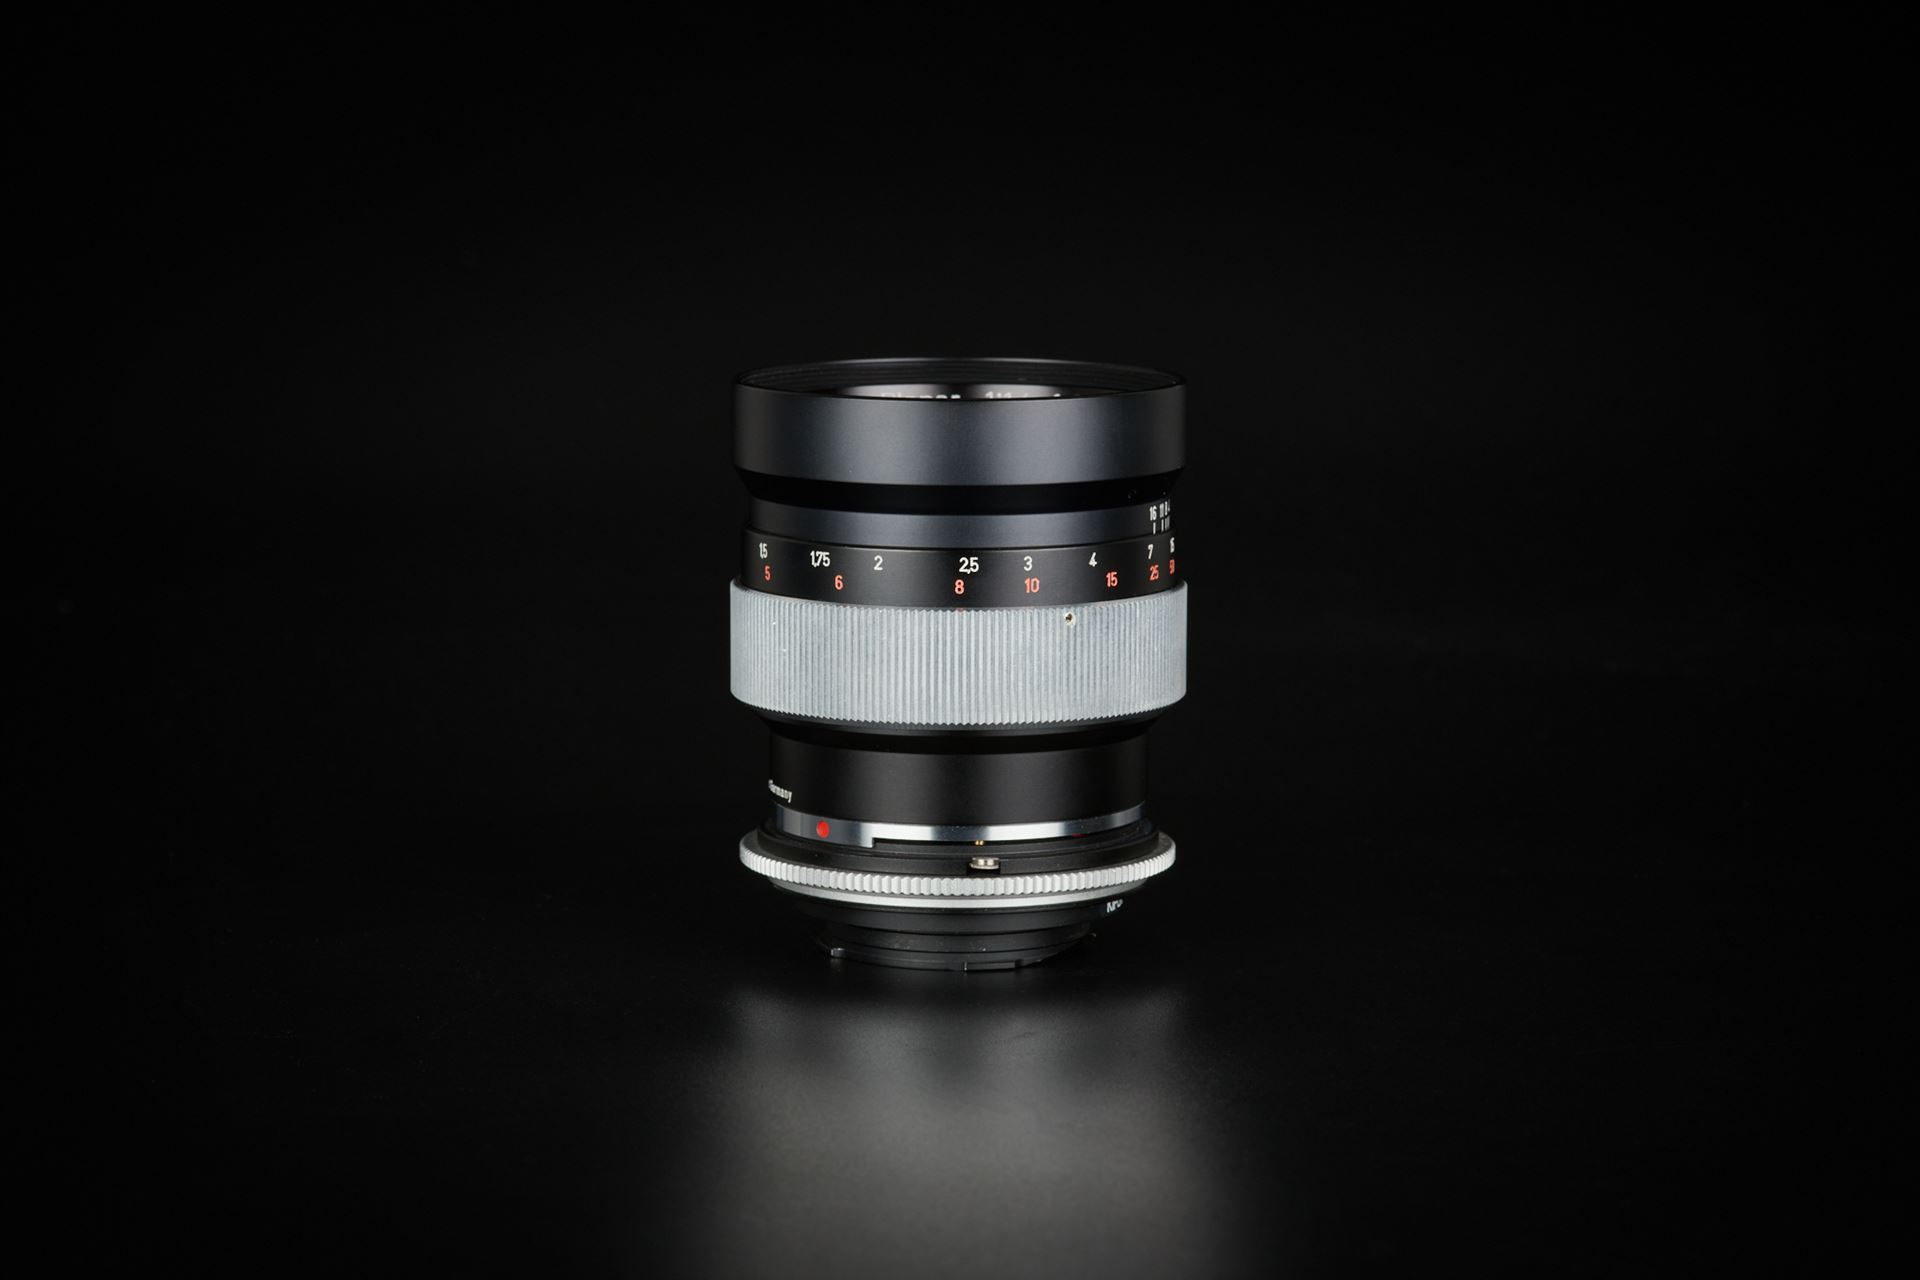 Picture of contarex planar 85mm f/1.4